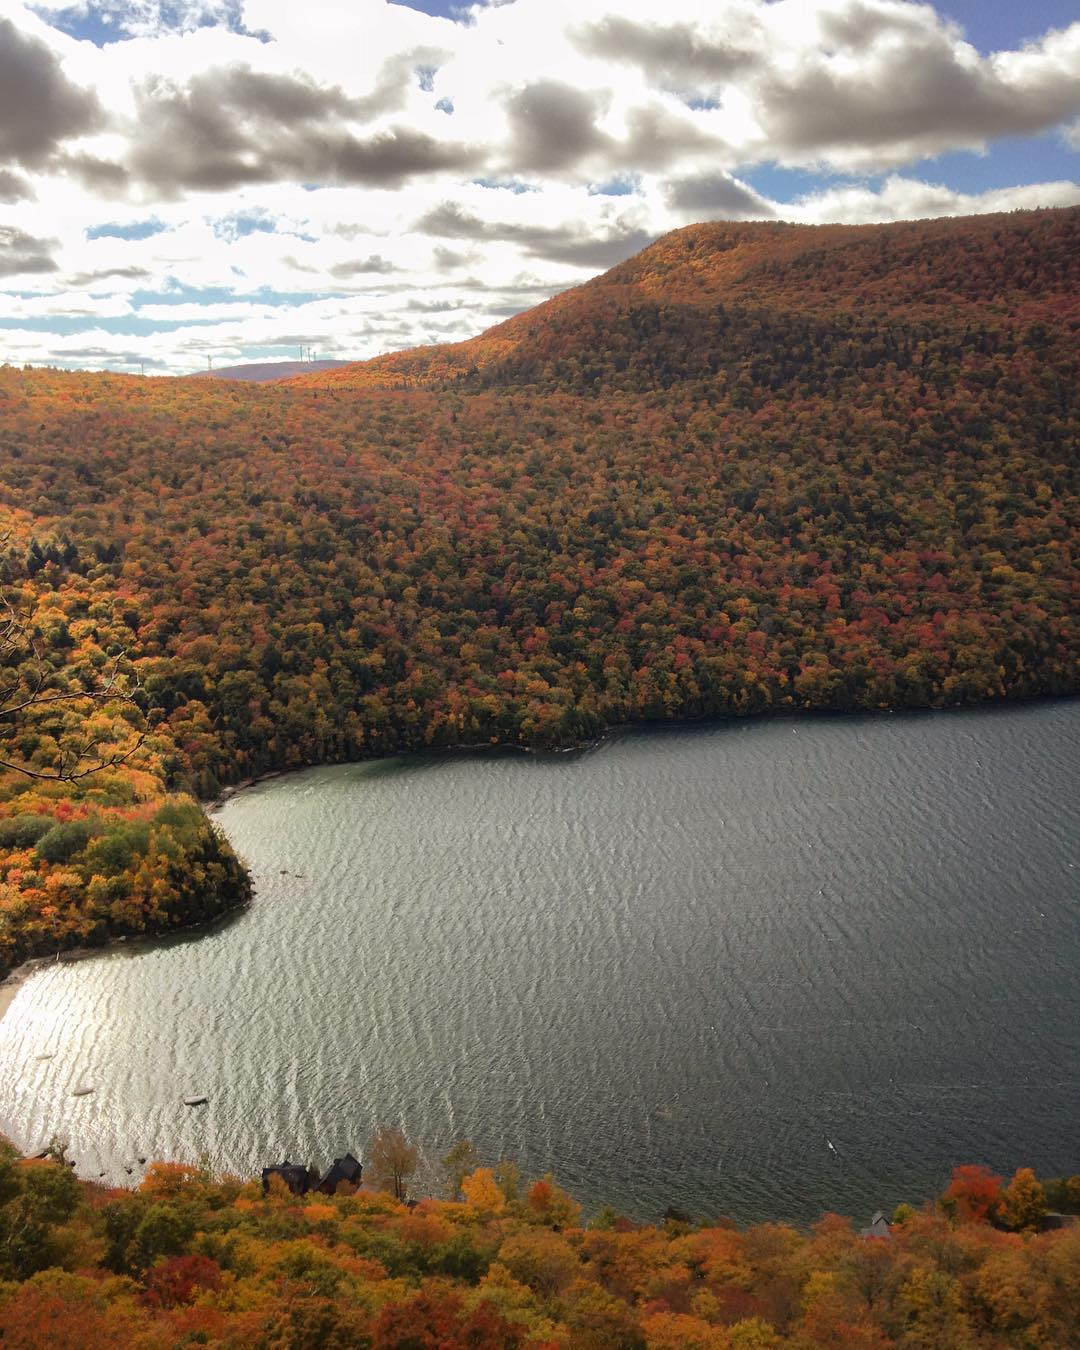 If you find yourself leaf peeping in #Vermont this fall... let us know! Stop by our office in Burlington for a visit and for recommendations on where to see the best & brightest foliage. We're proud to call this beautiful state home, especially this...